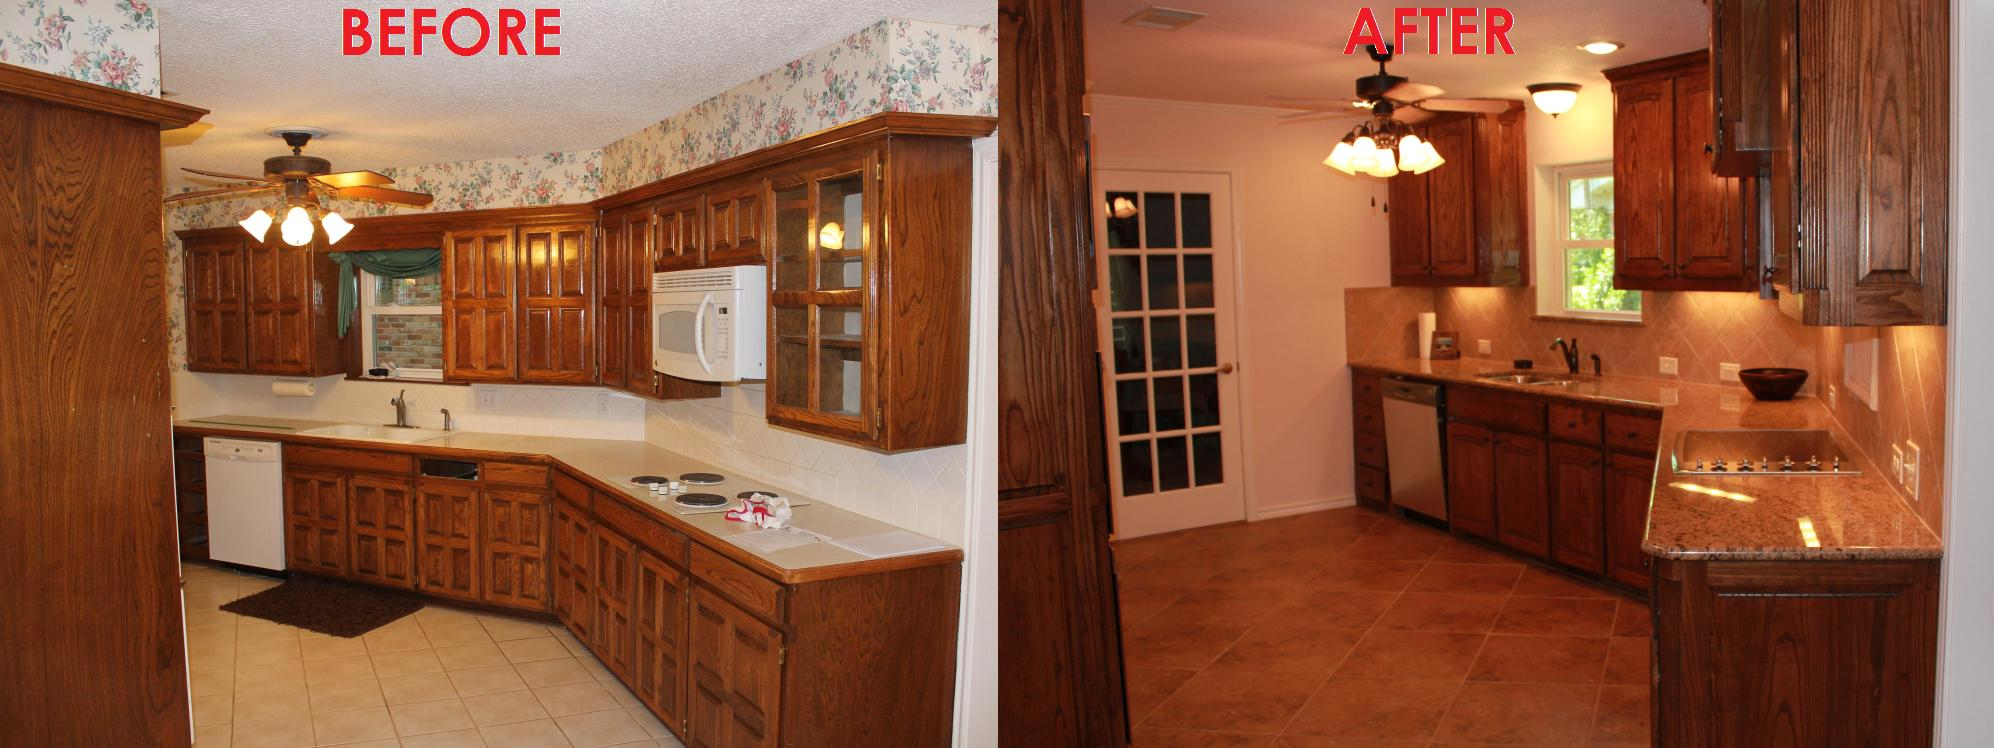 Small kitchen remodel before and after for stunning and for Kitchen remodel